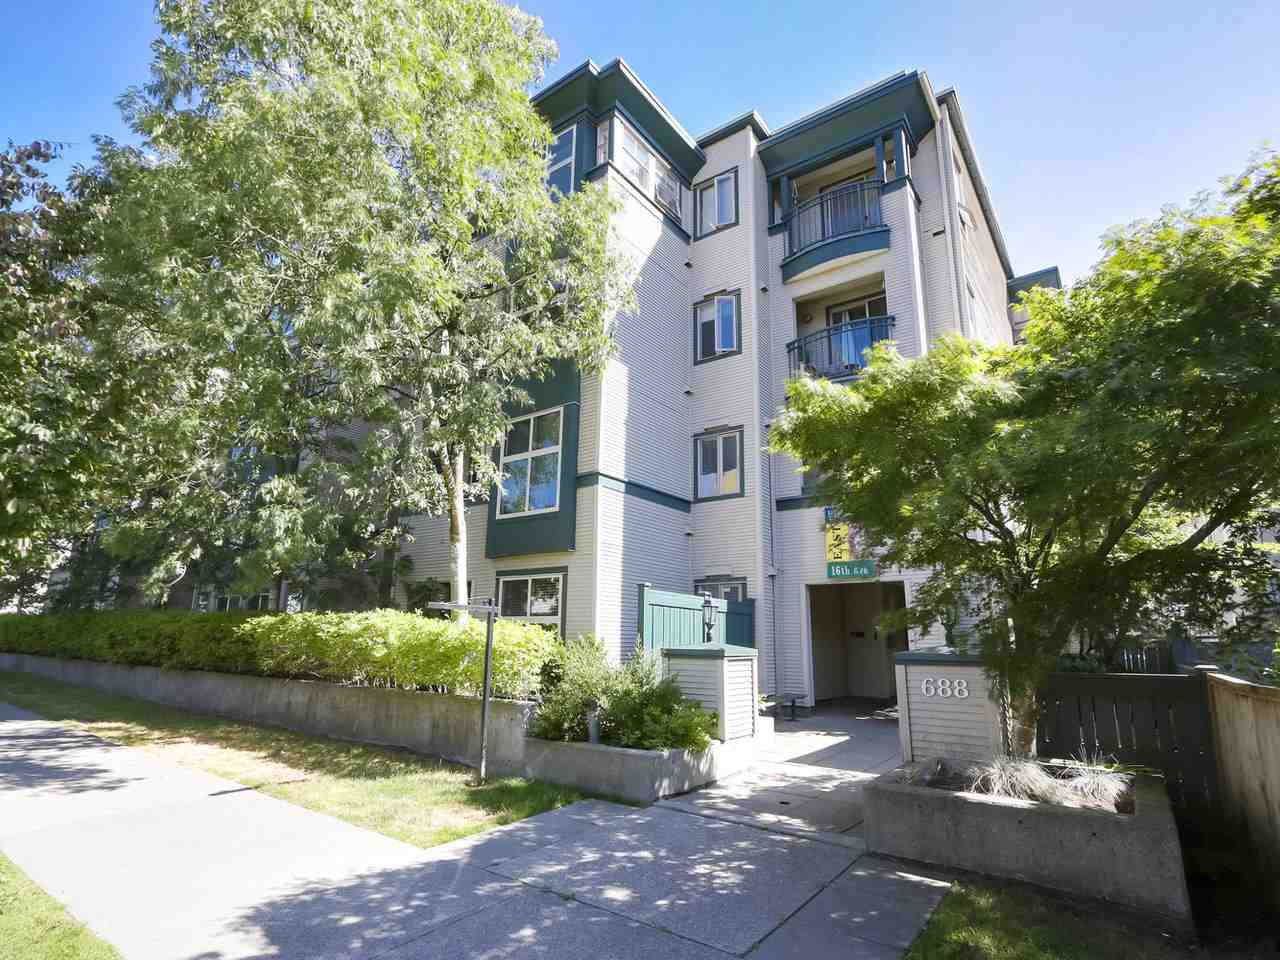 312 688 E 16TH AVENUE - Fraser VE Apartment/Condo for sale, 1 Bedroom (R2510286) - #1